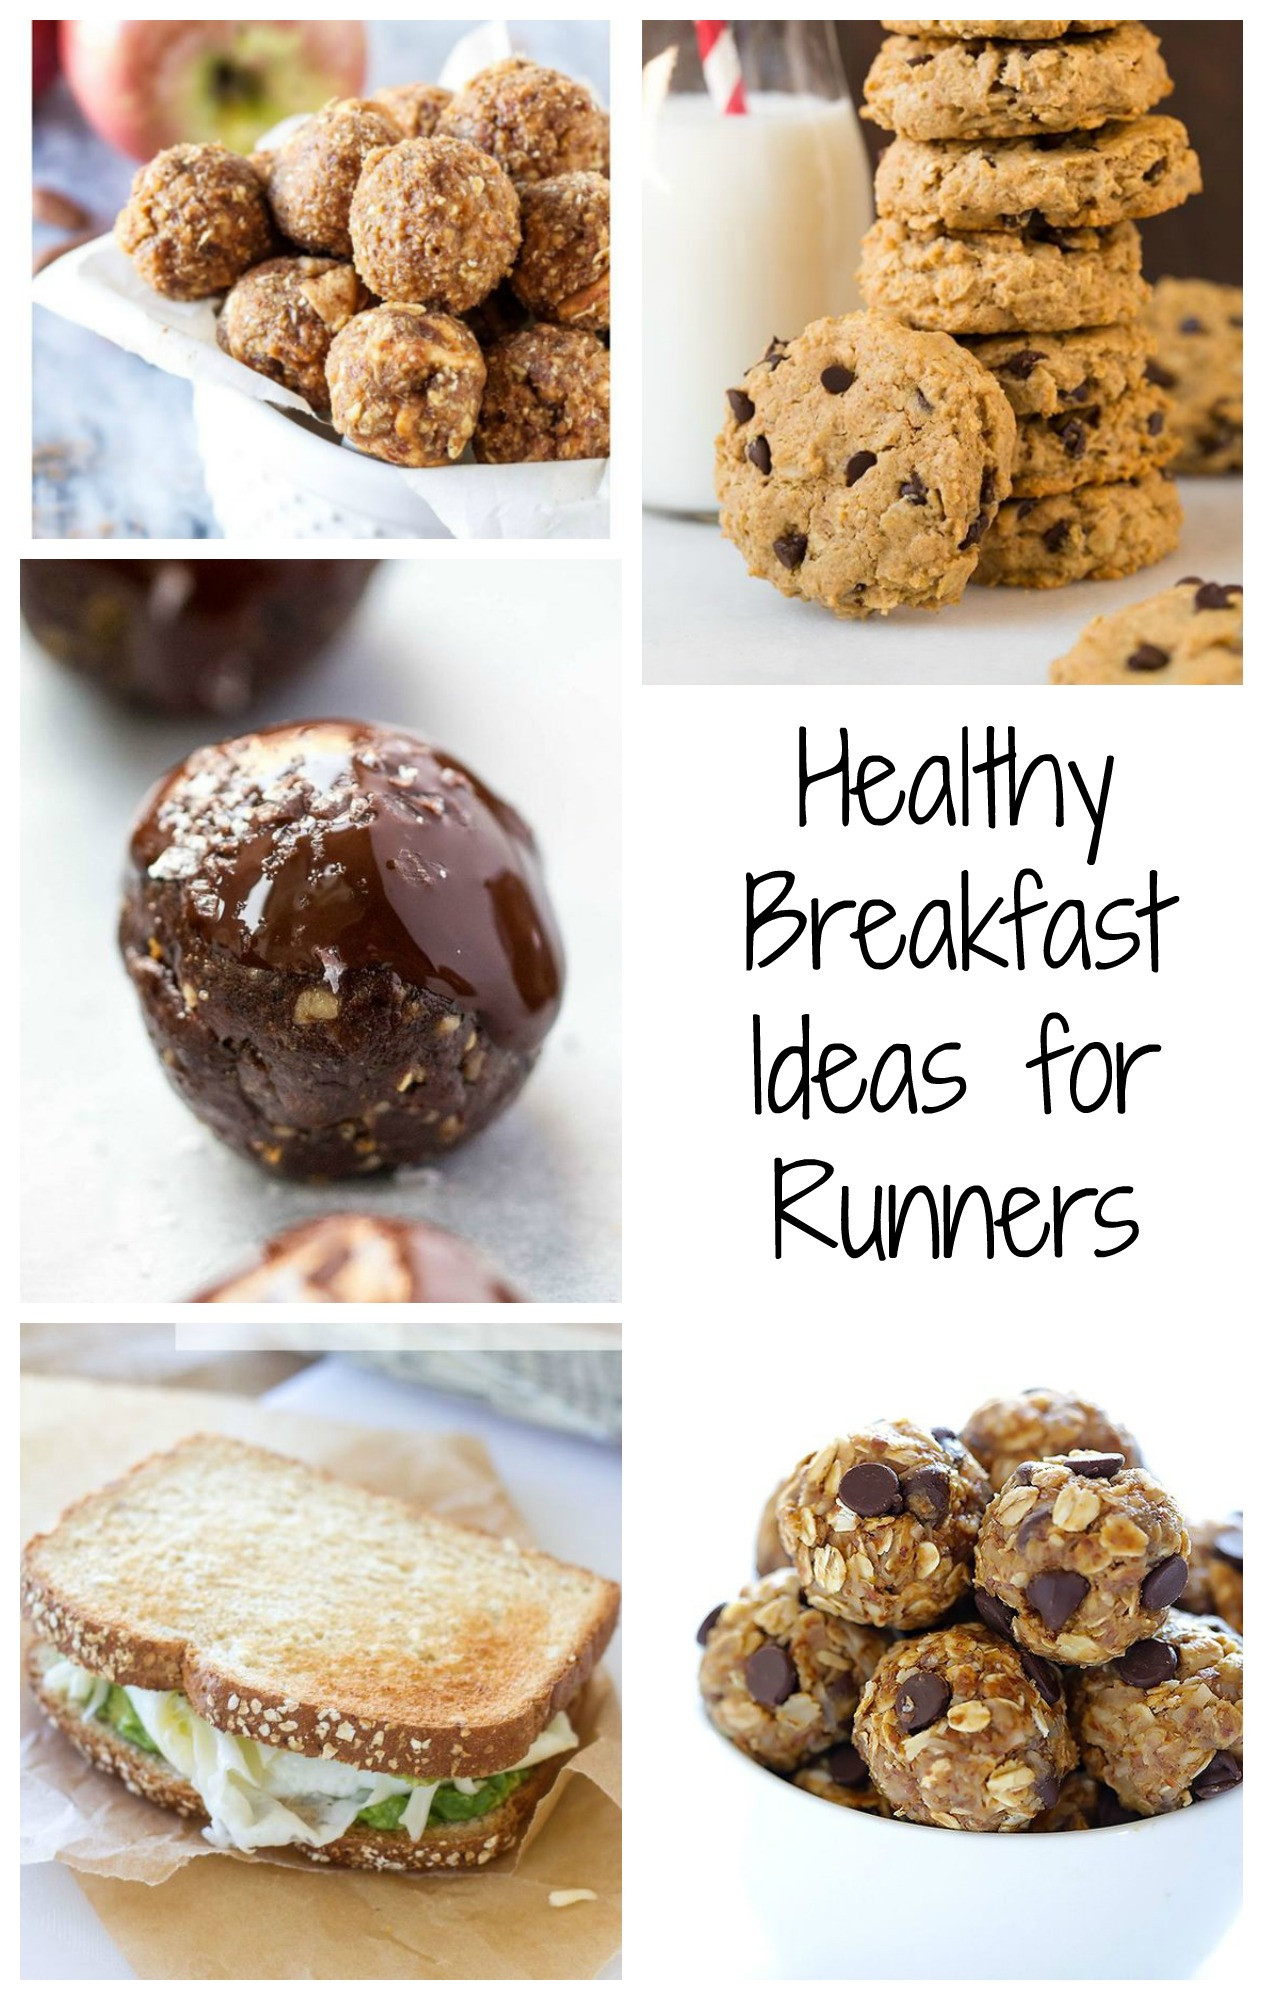 Healthy Breakfast for Runners the top 20 Ideas About Healthy Breakfast Ideas for Runners Run forefoot